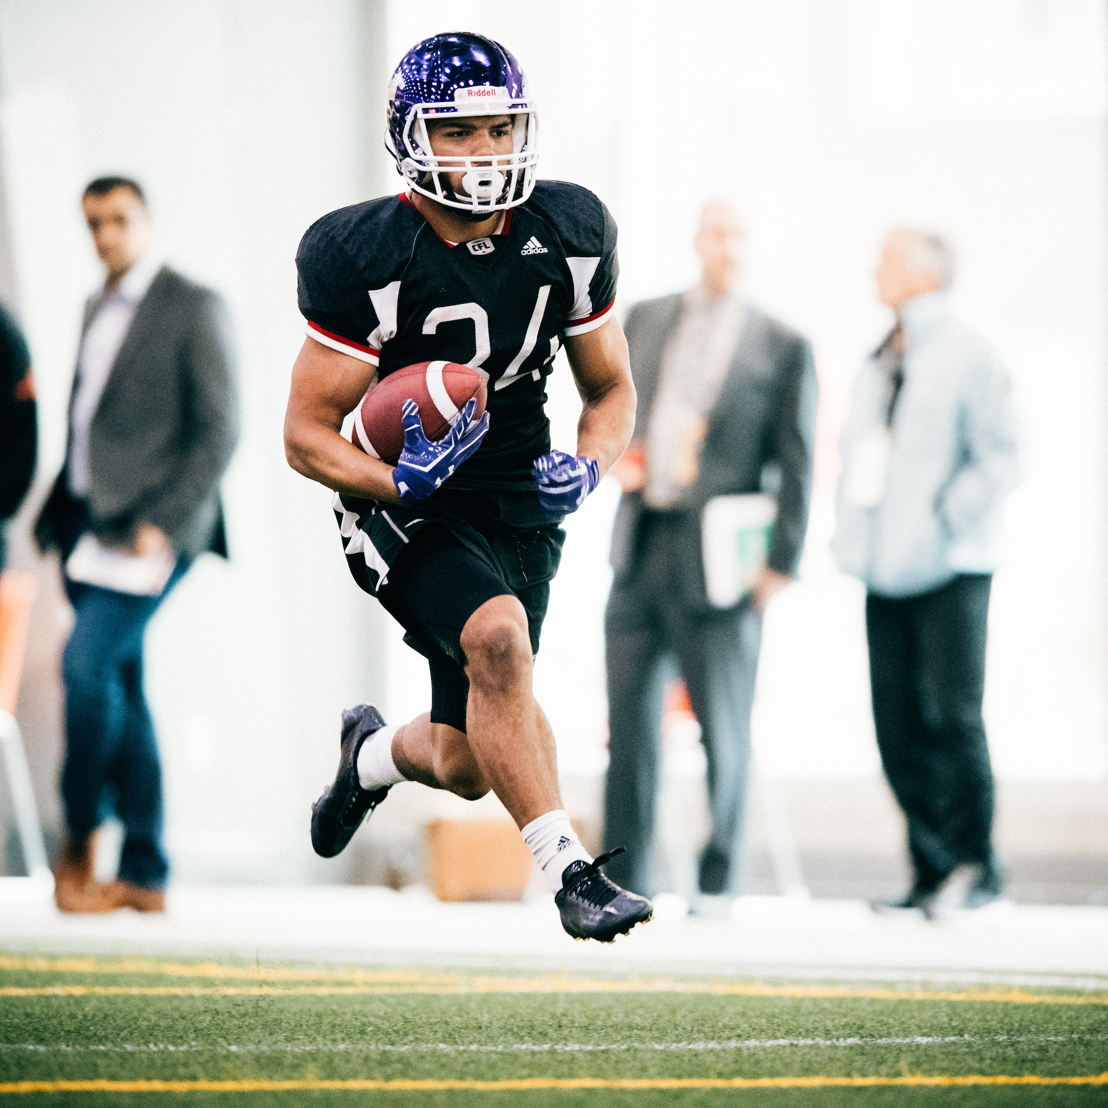 Alex Taylor of Winnipeg,  MB at the CFL Combine presented by adidas. Photo credit: Johany Jutras/CFL.ca